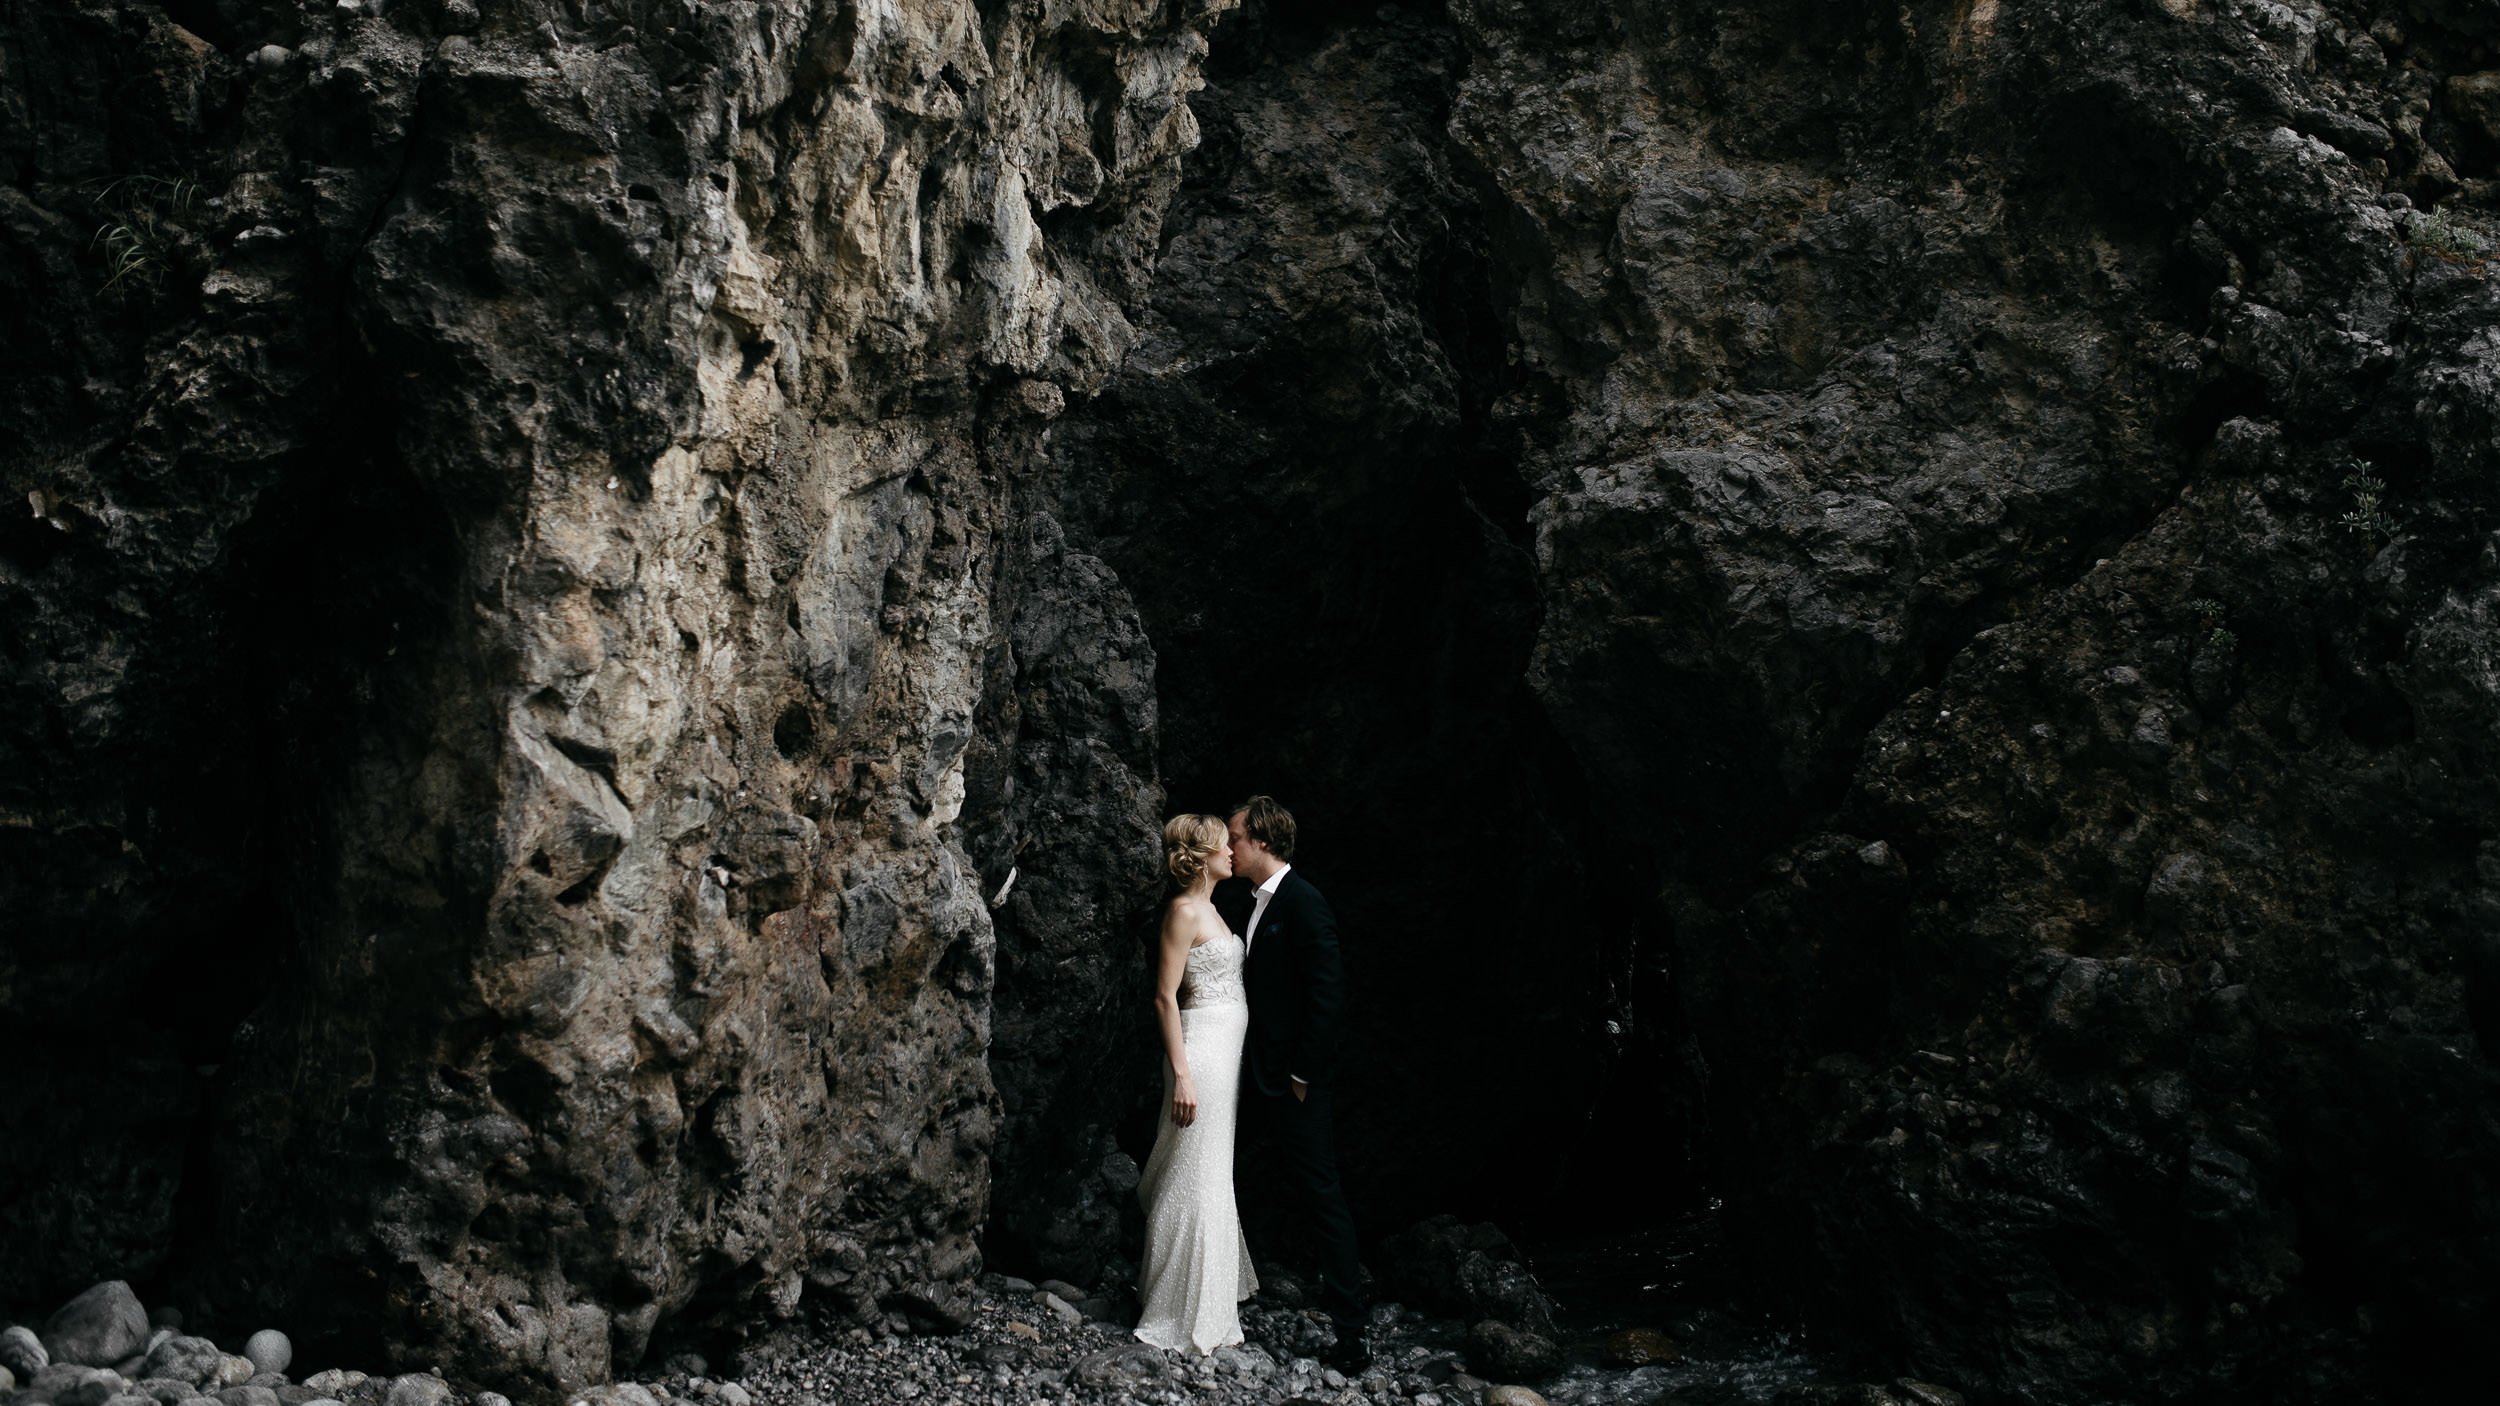 Jean-Laurent Gaudy, United Kingdom Destination Wedding Elopement Photographer.